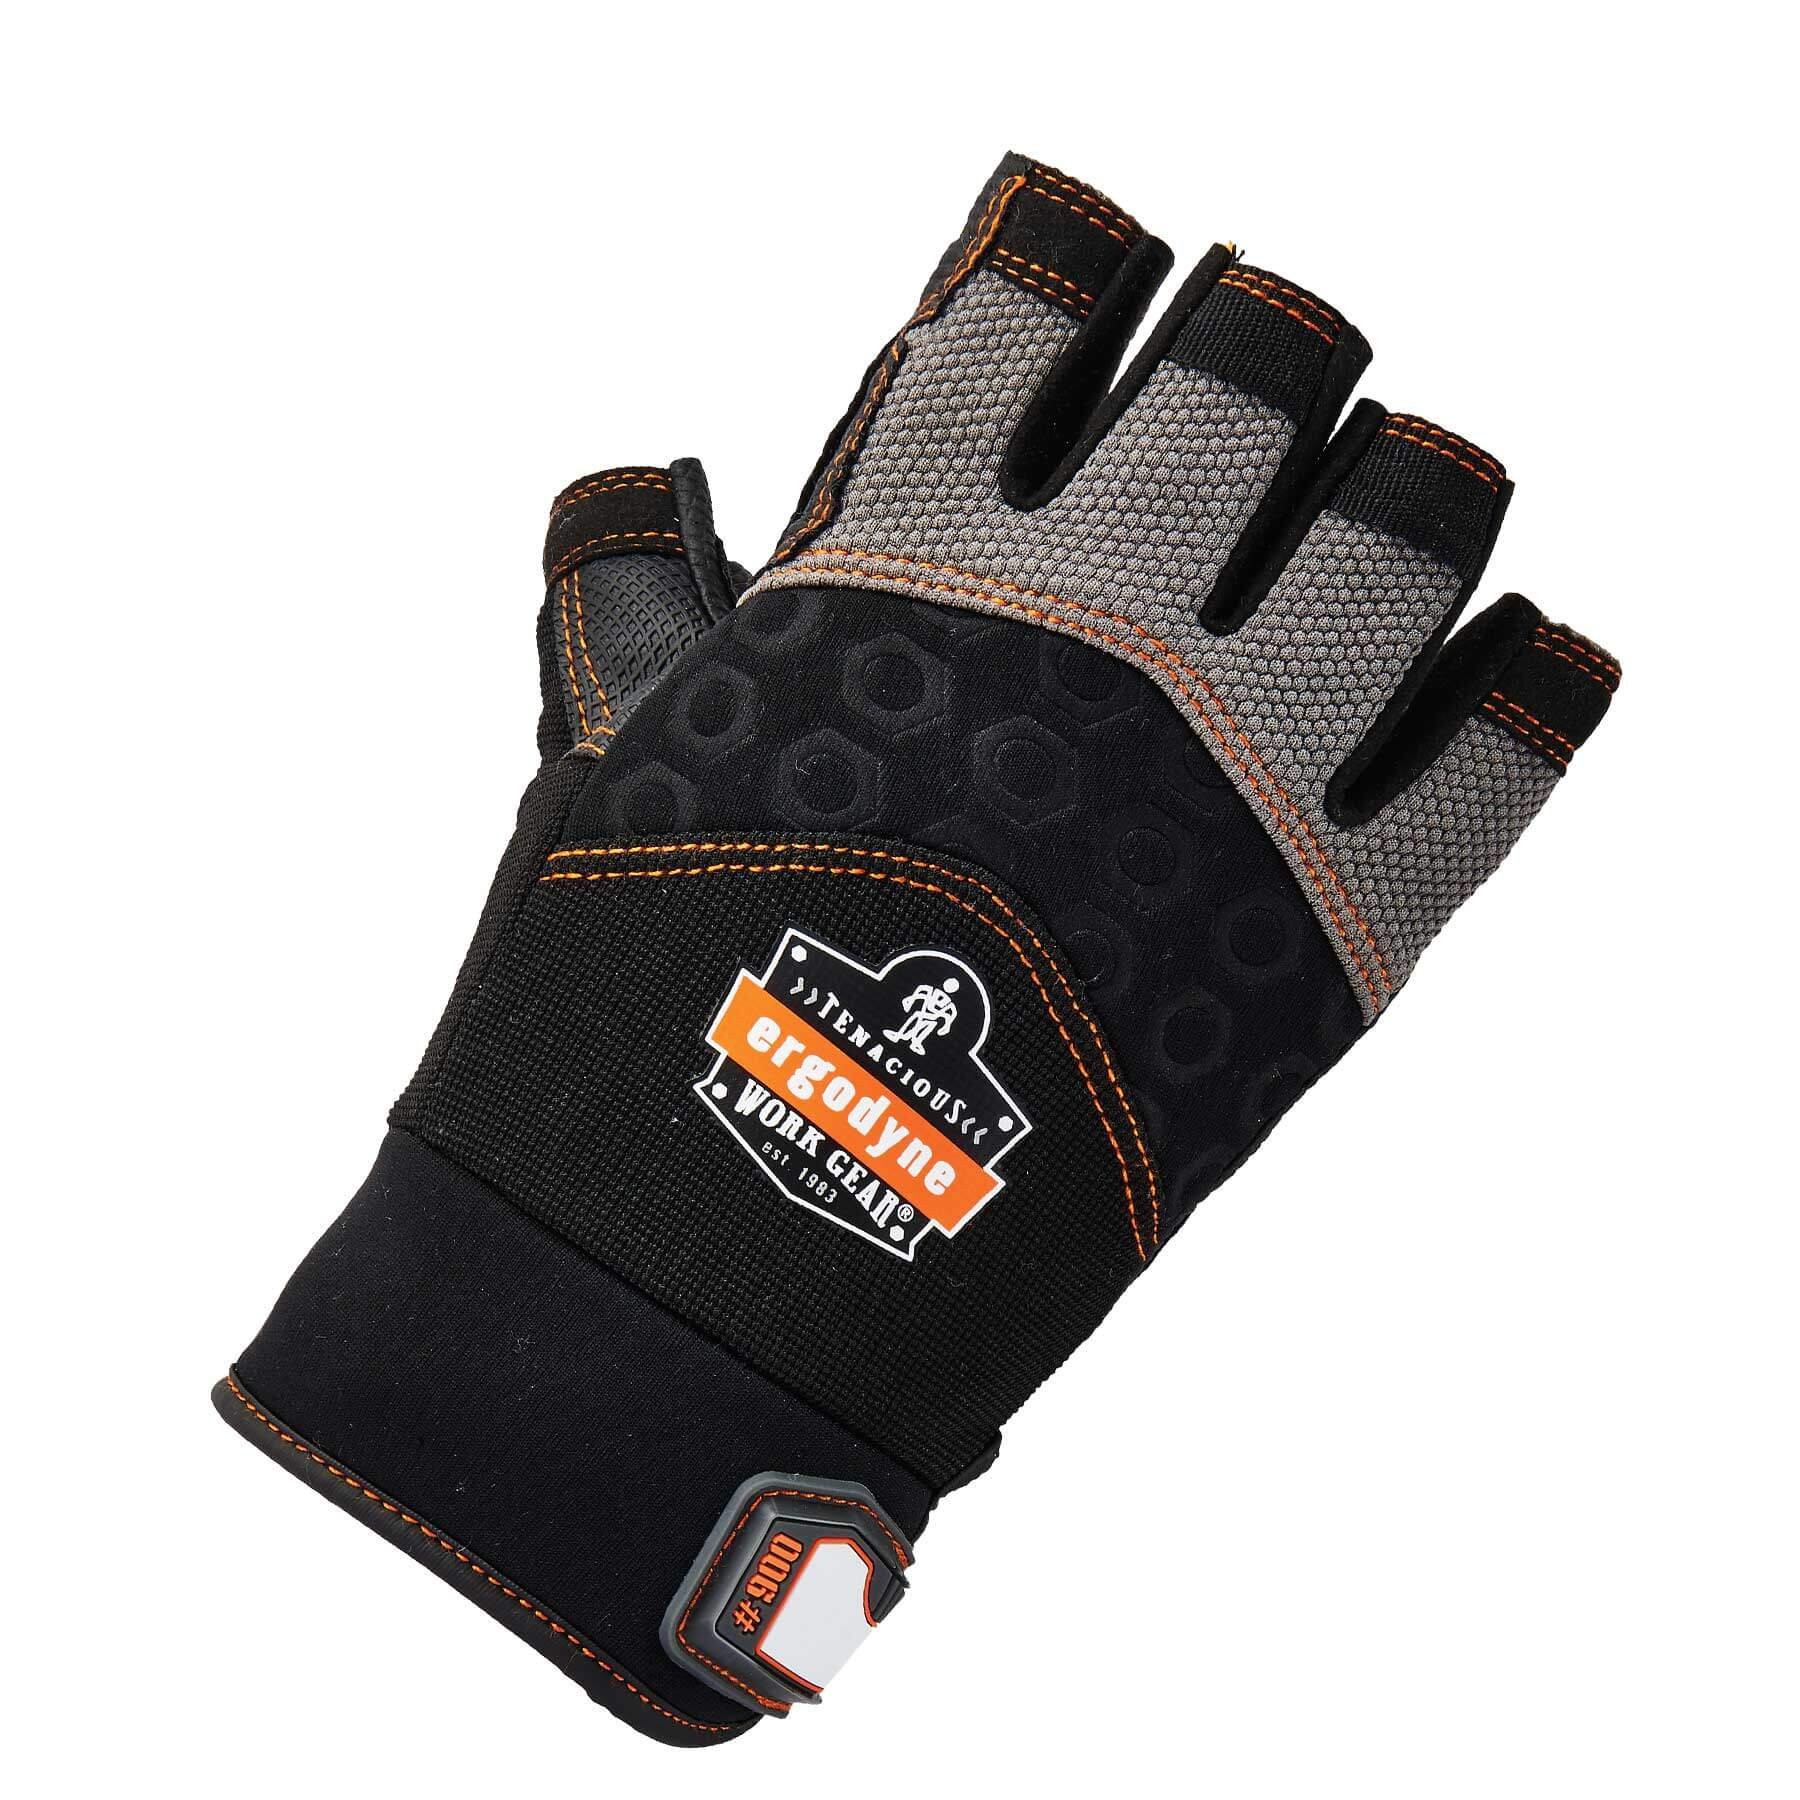 Ergodyne ProFlex 900 Impact Protection Work Gloves, Padded Palm, Half-Finger, X-Large by Ergodyne (Image #2)